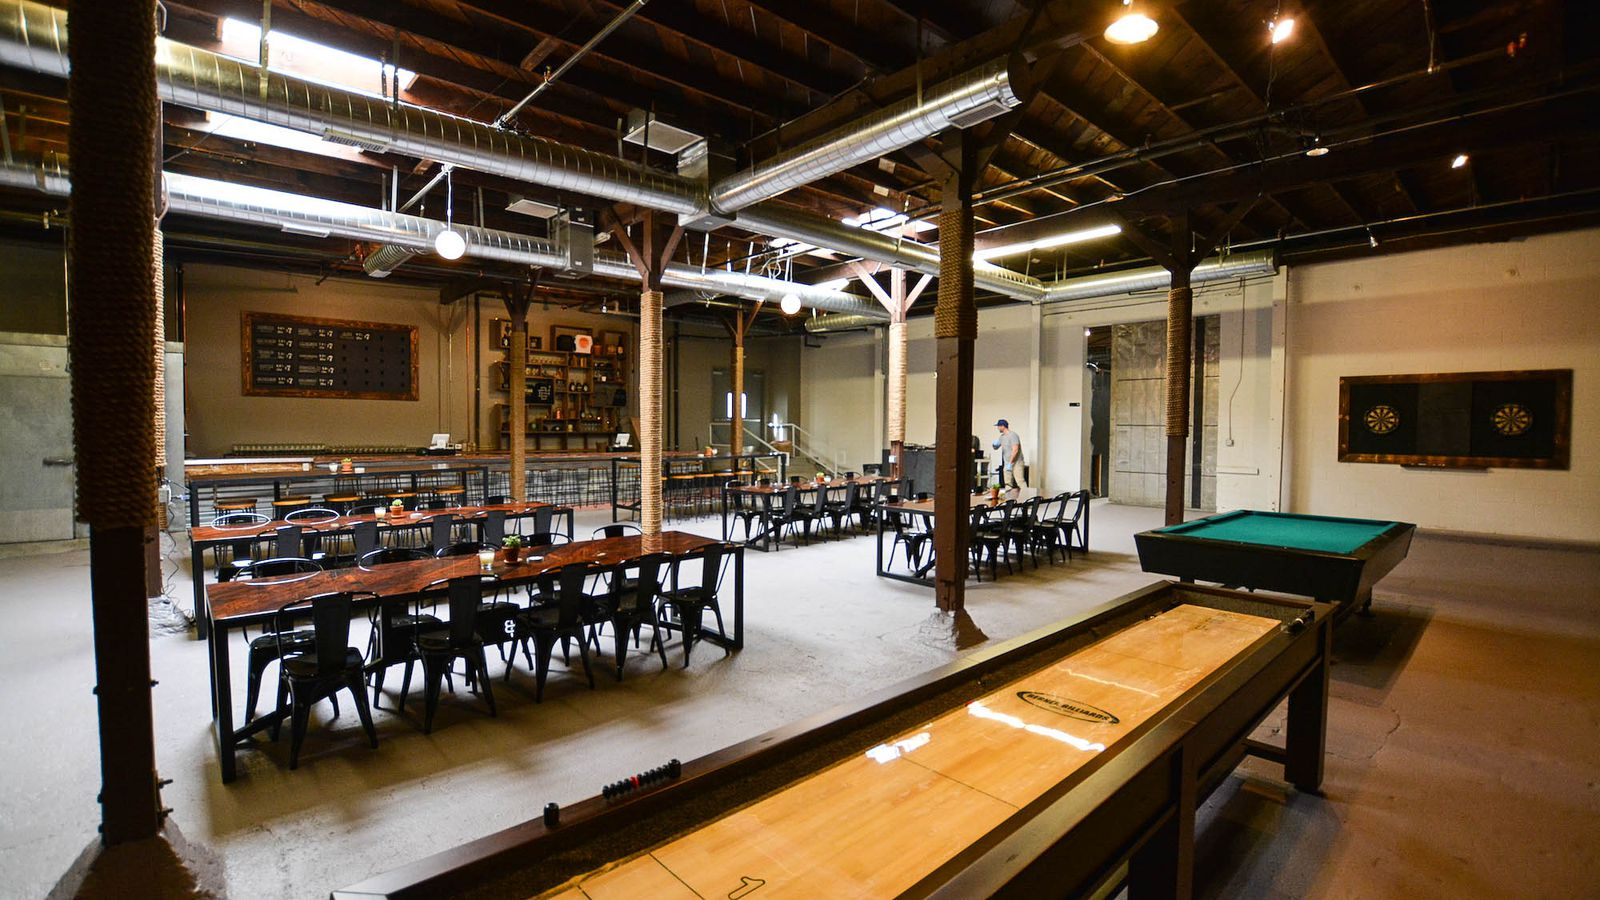 Boomtown Brewery Packs In The Party With New Arts District